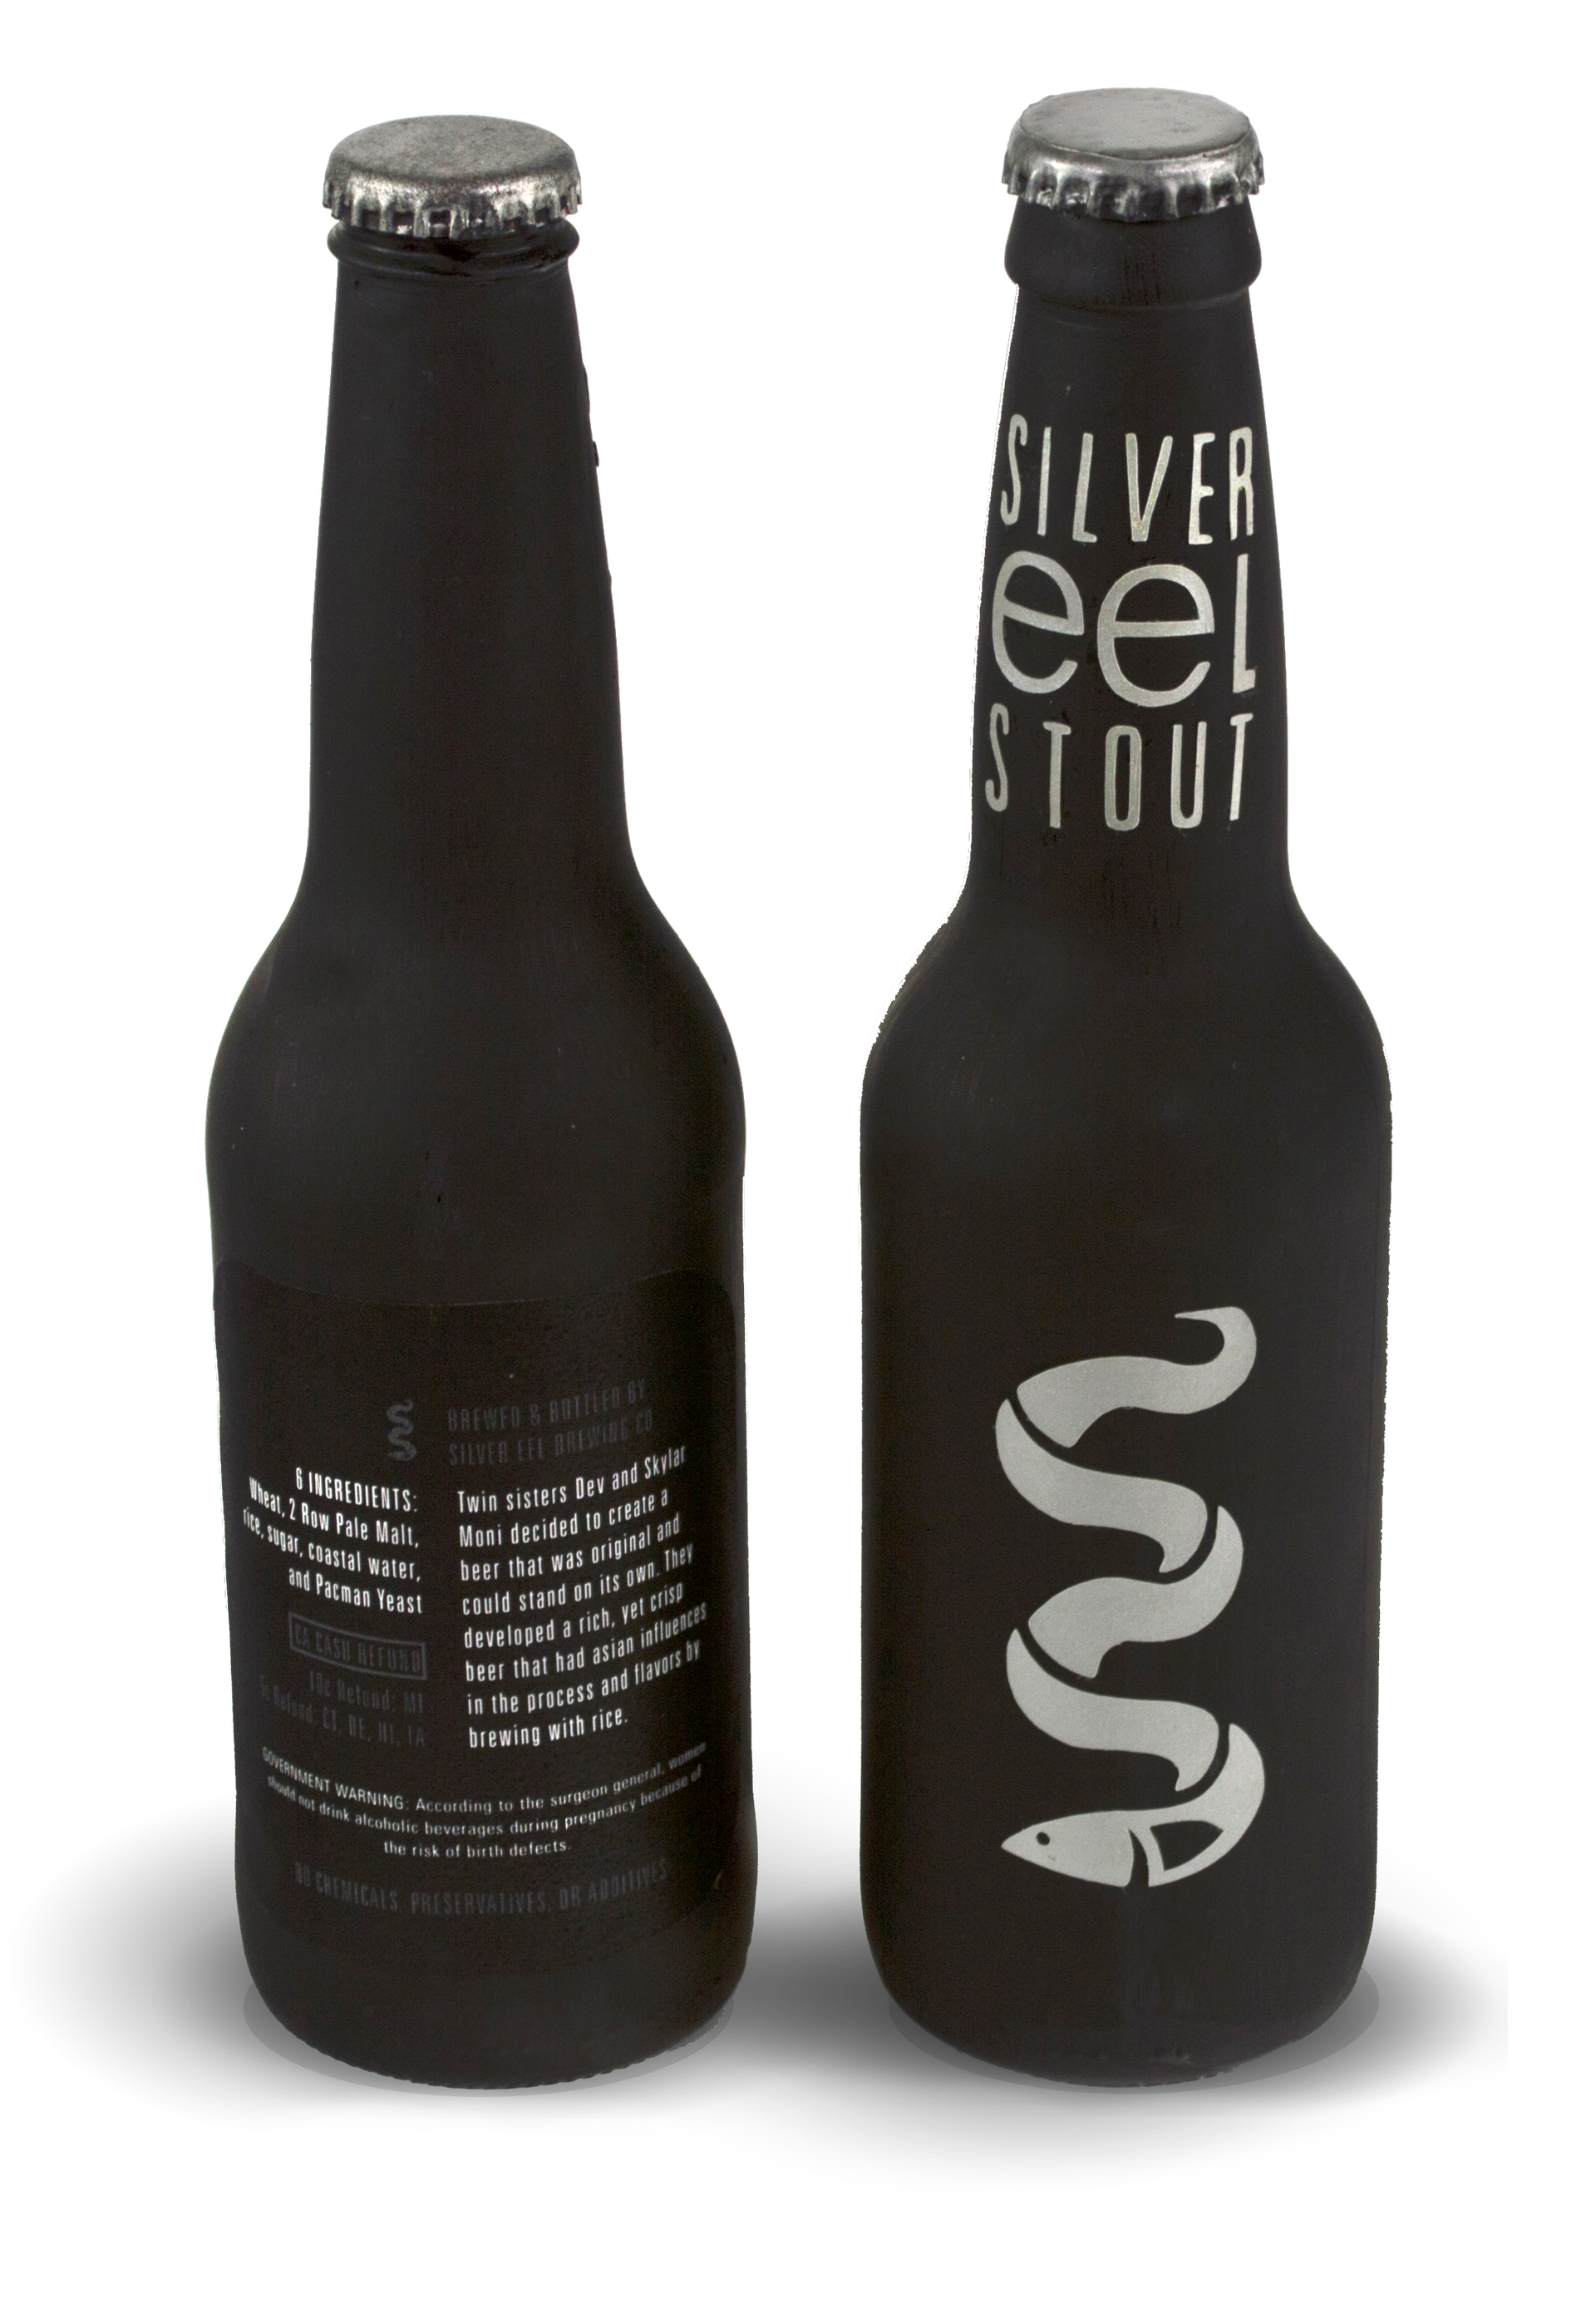 black stout beer bottle design with logo and typography